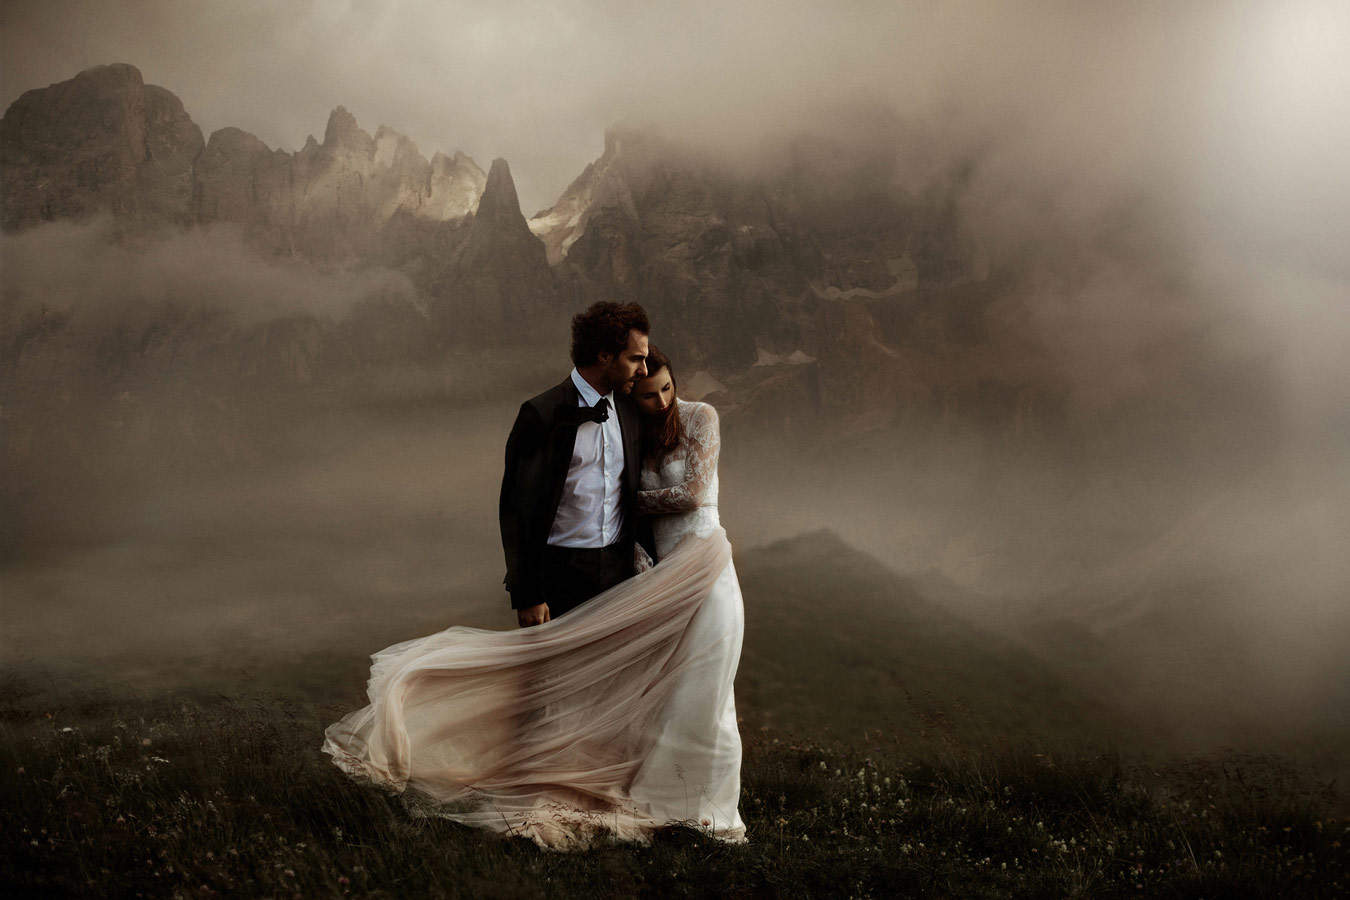 Stormy love in the Dolomites. The Story of Giulia and Fede, © The Ferros, Edinburgh, Edinburgh, United Kingdom, Rangefinder Wedding Contest